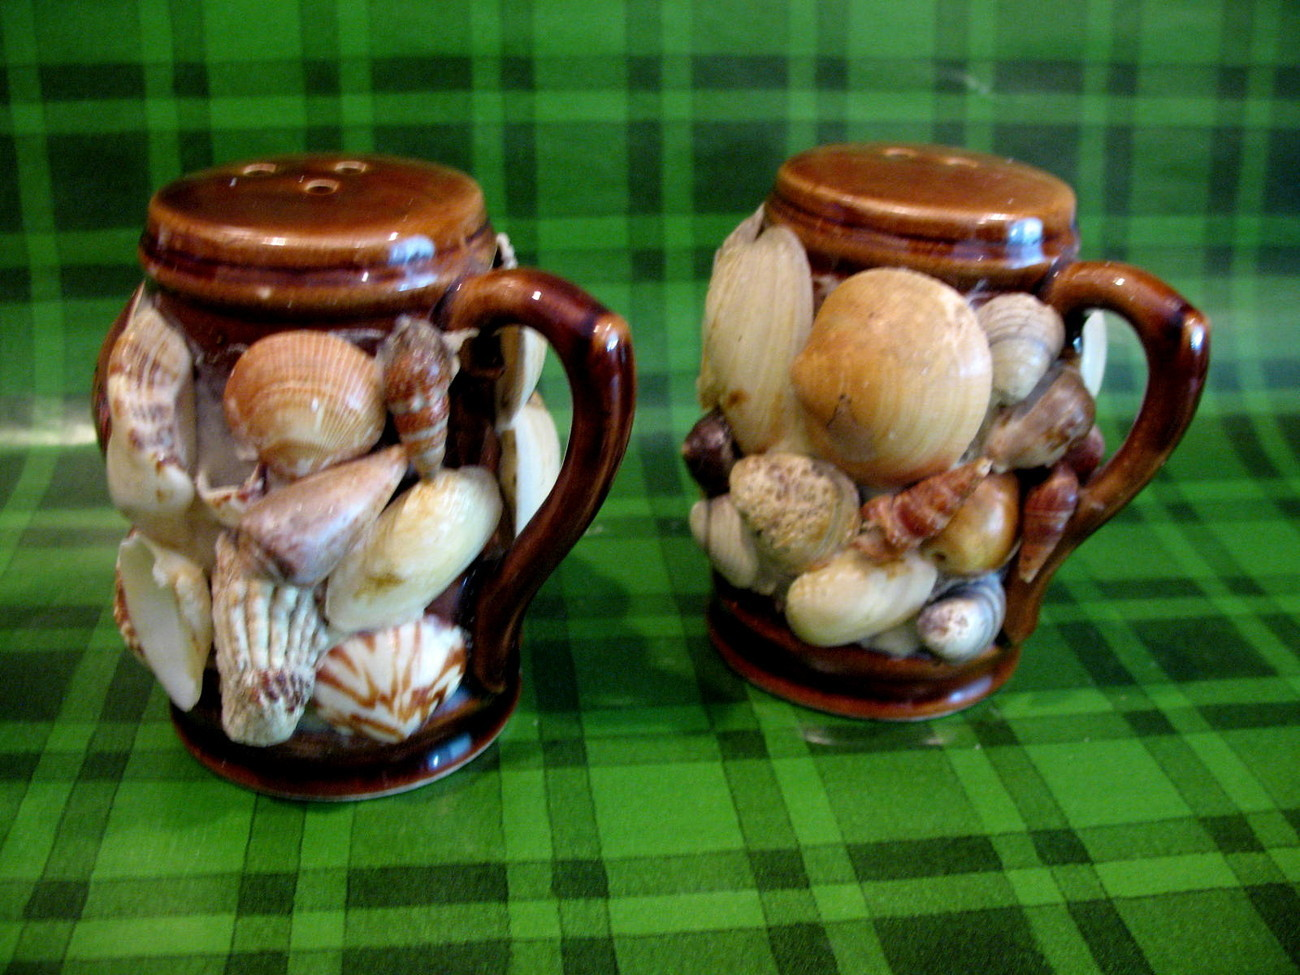 Hawaii Seashells Salt Pepper Shakers Set Vintage Souvenir Collector Collectible